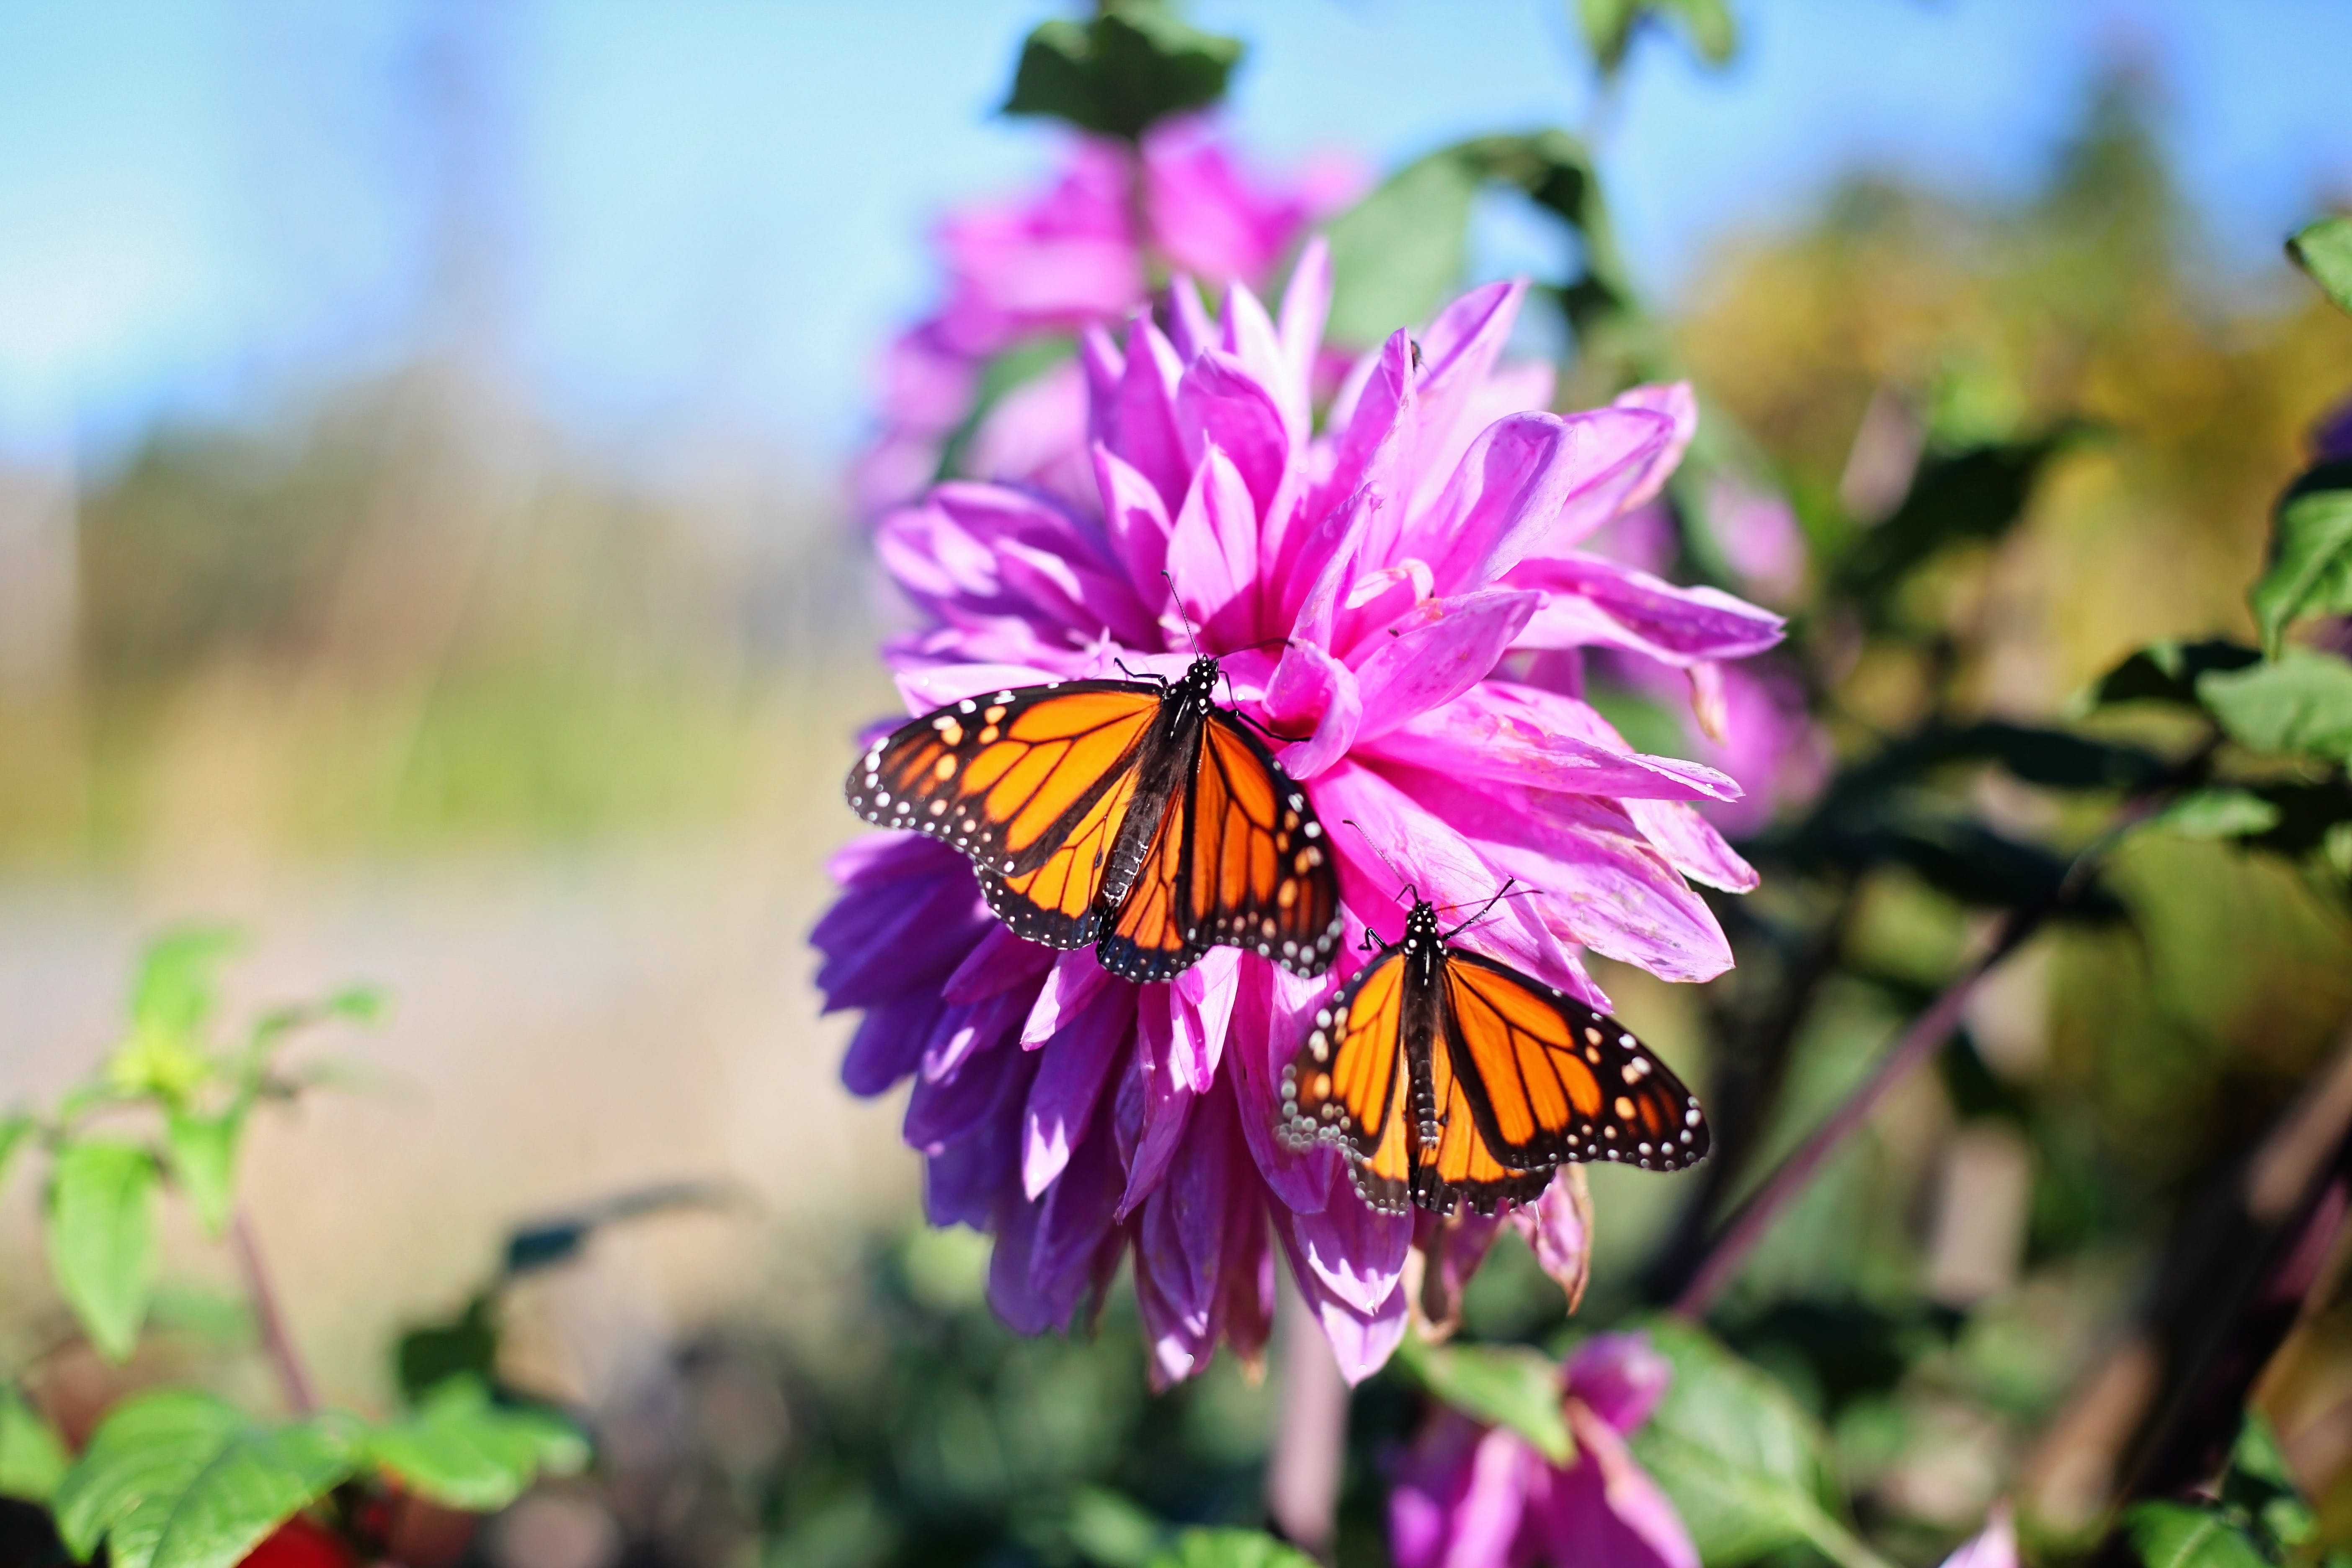 Shallow Focus Photography of Two Yellow-and-black Butterflies on Pink Flower